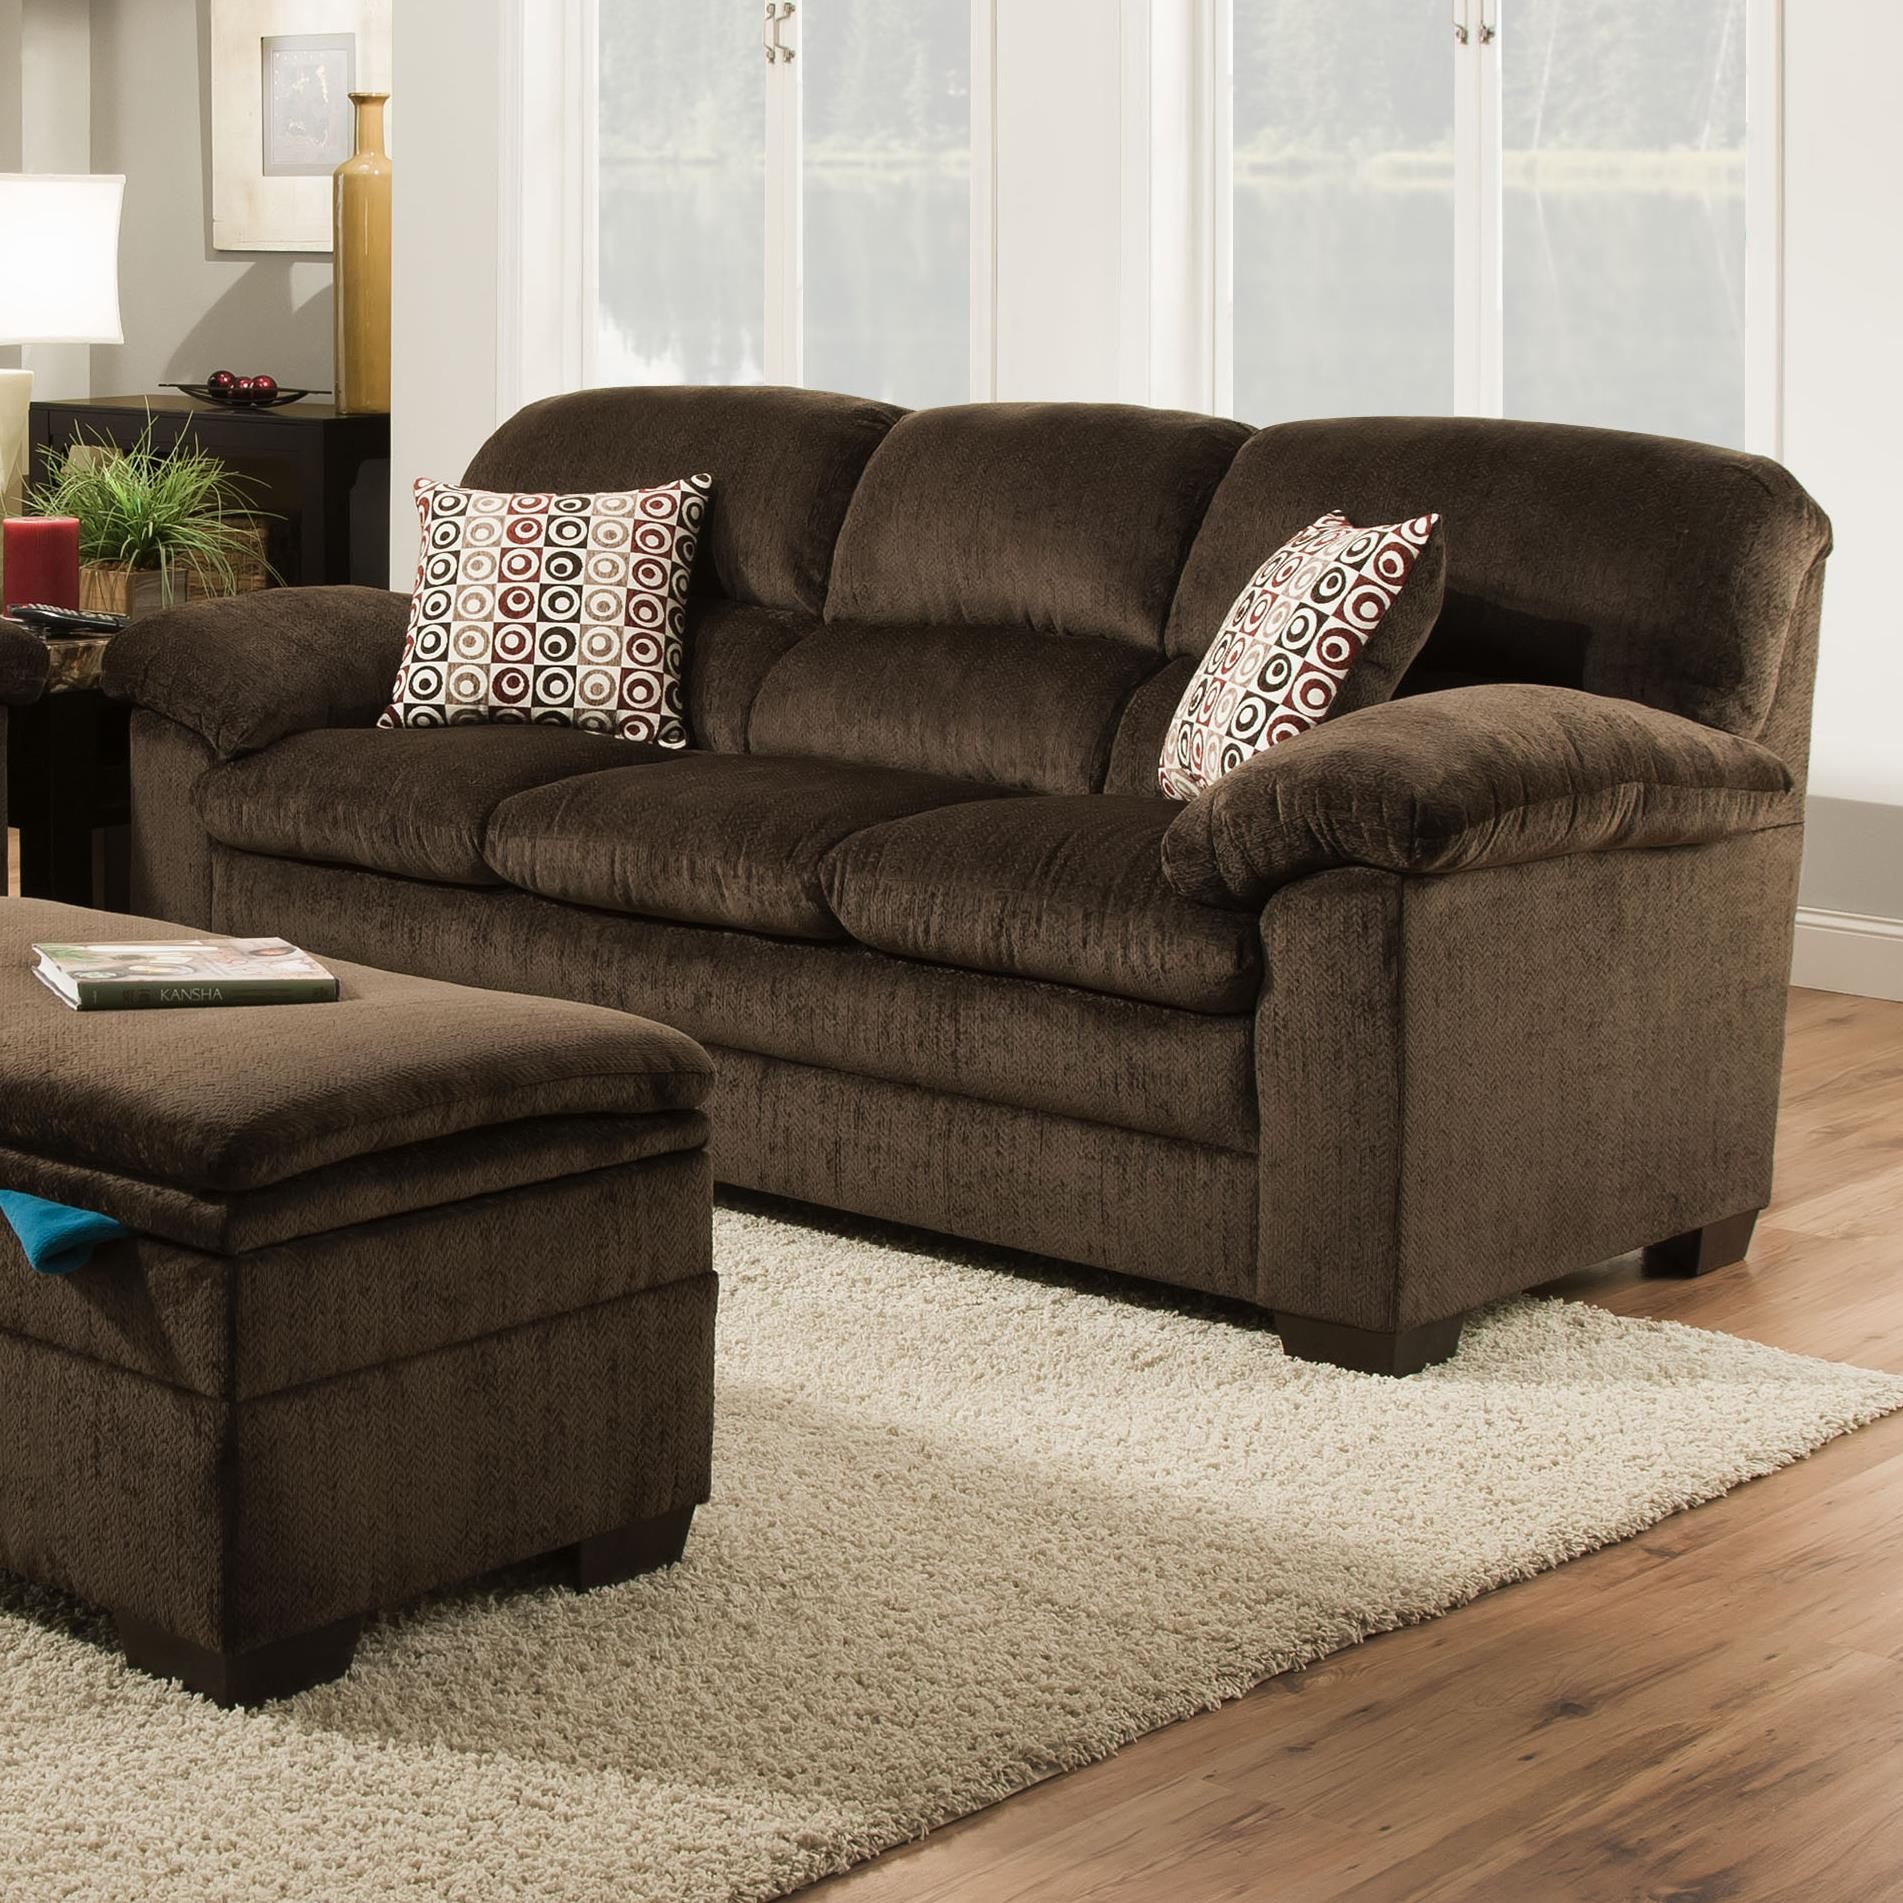 United Furniture Industries 3684 Stationary Sofa - Item Number: 3684-SF-Chocolate